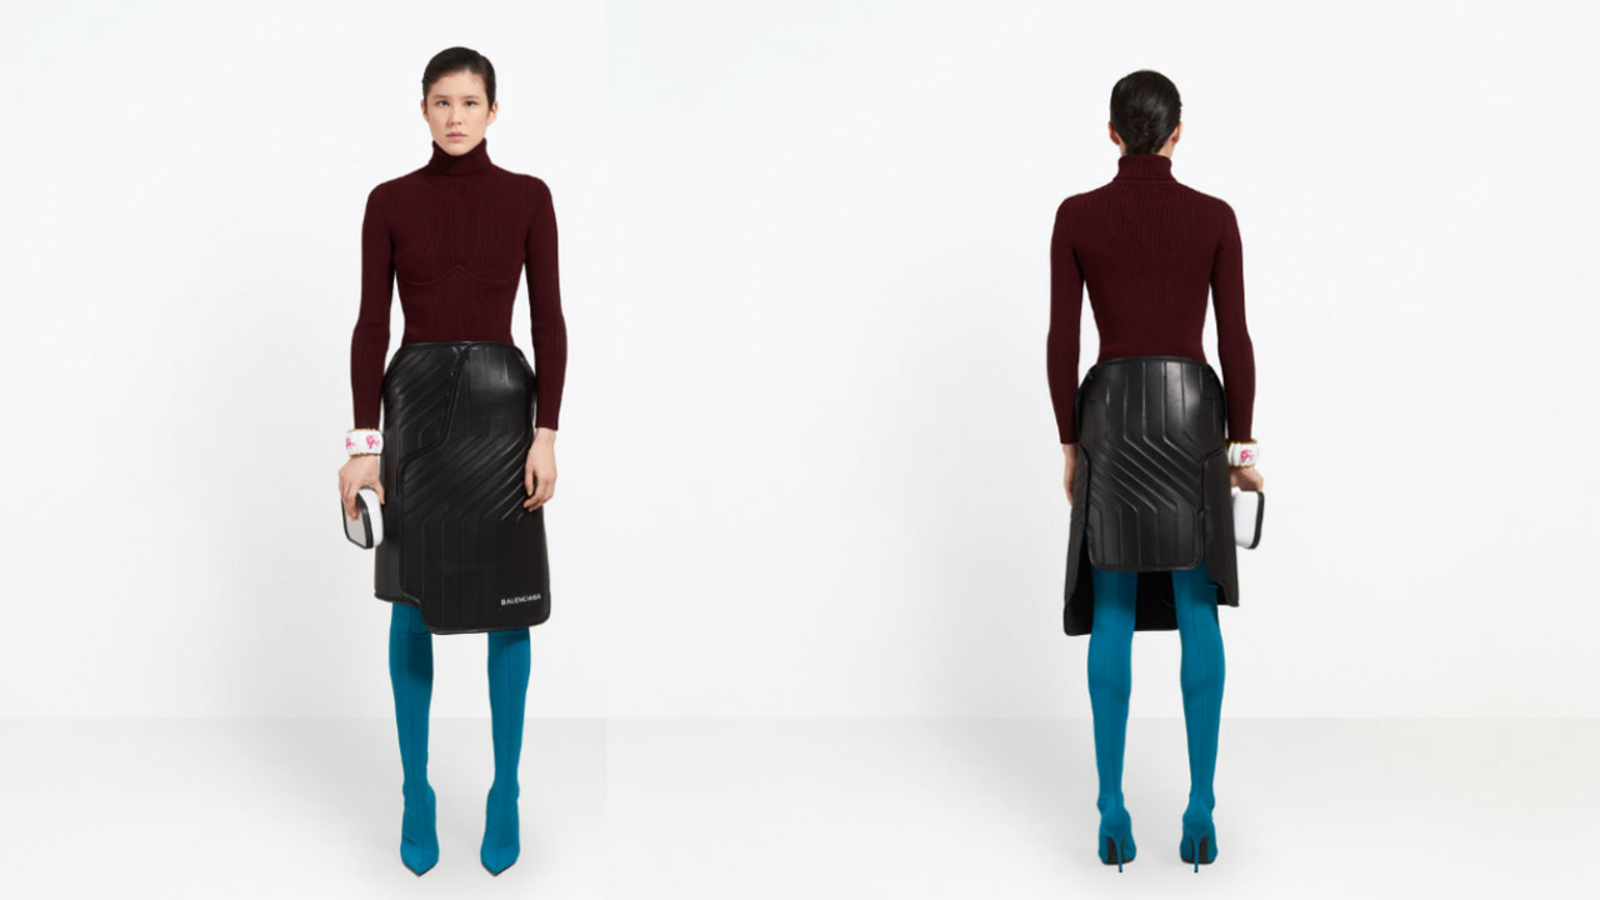 High End Designer Balenciaga Mocked For 2 400 Skirt That Resembles A Car Mat Abc7 Los Angeles